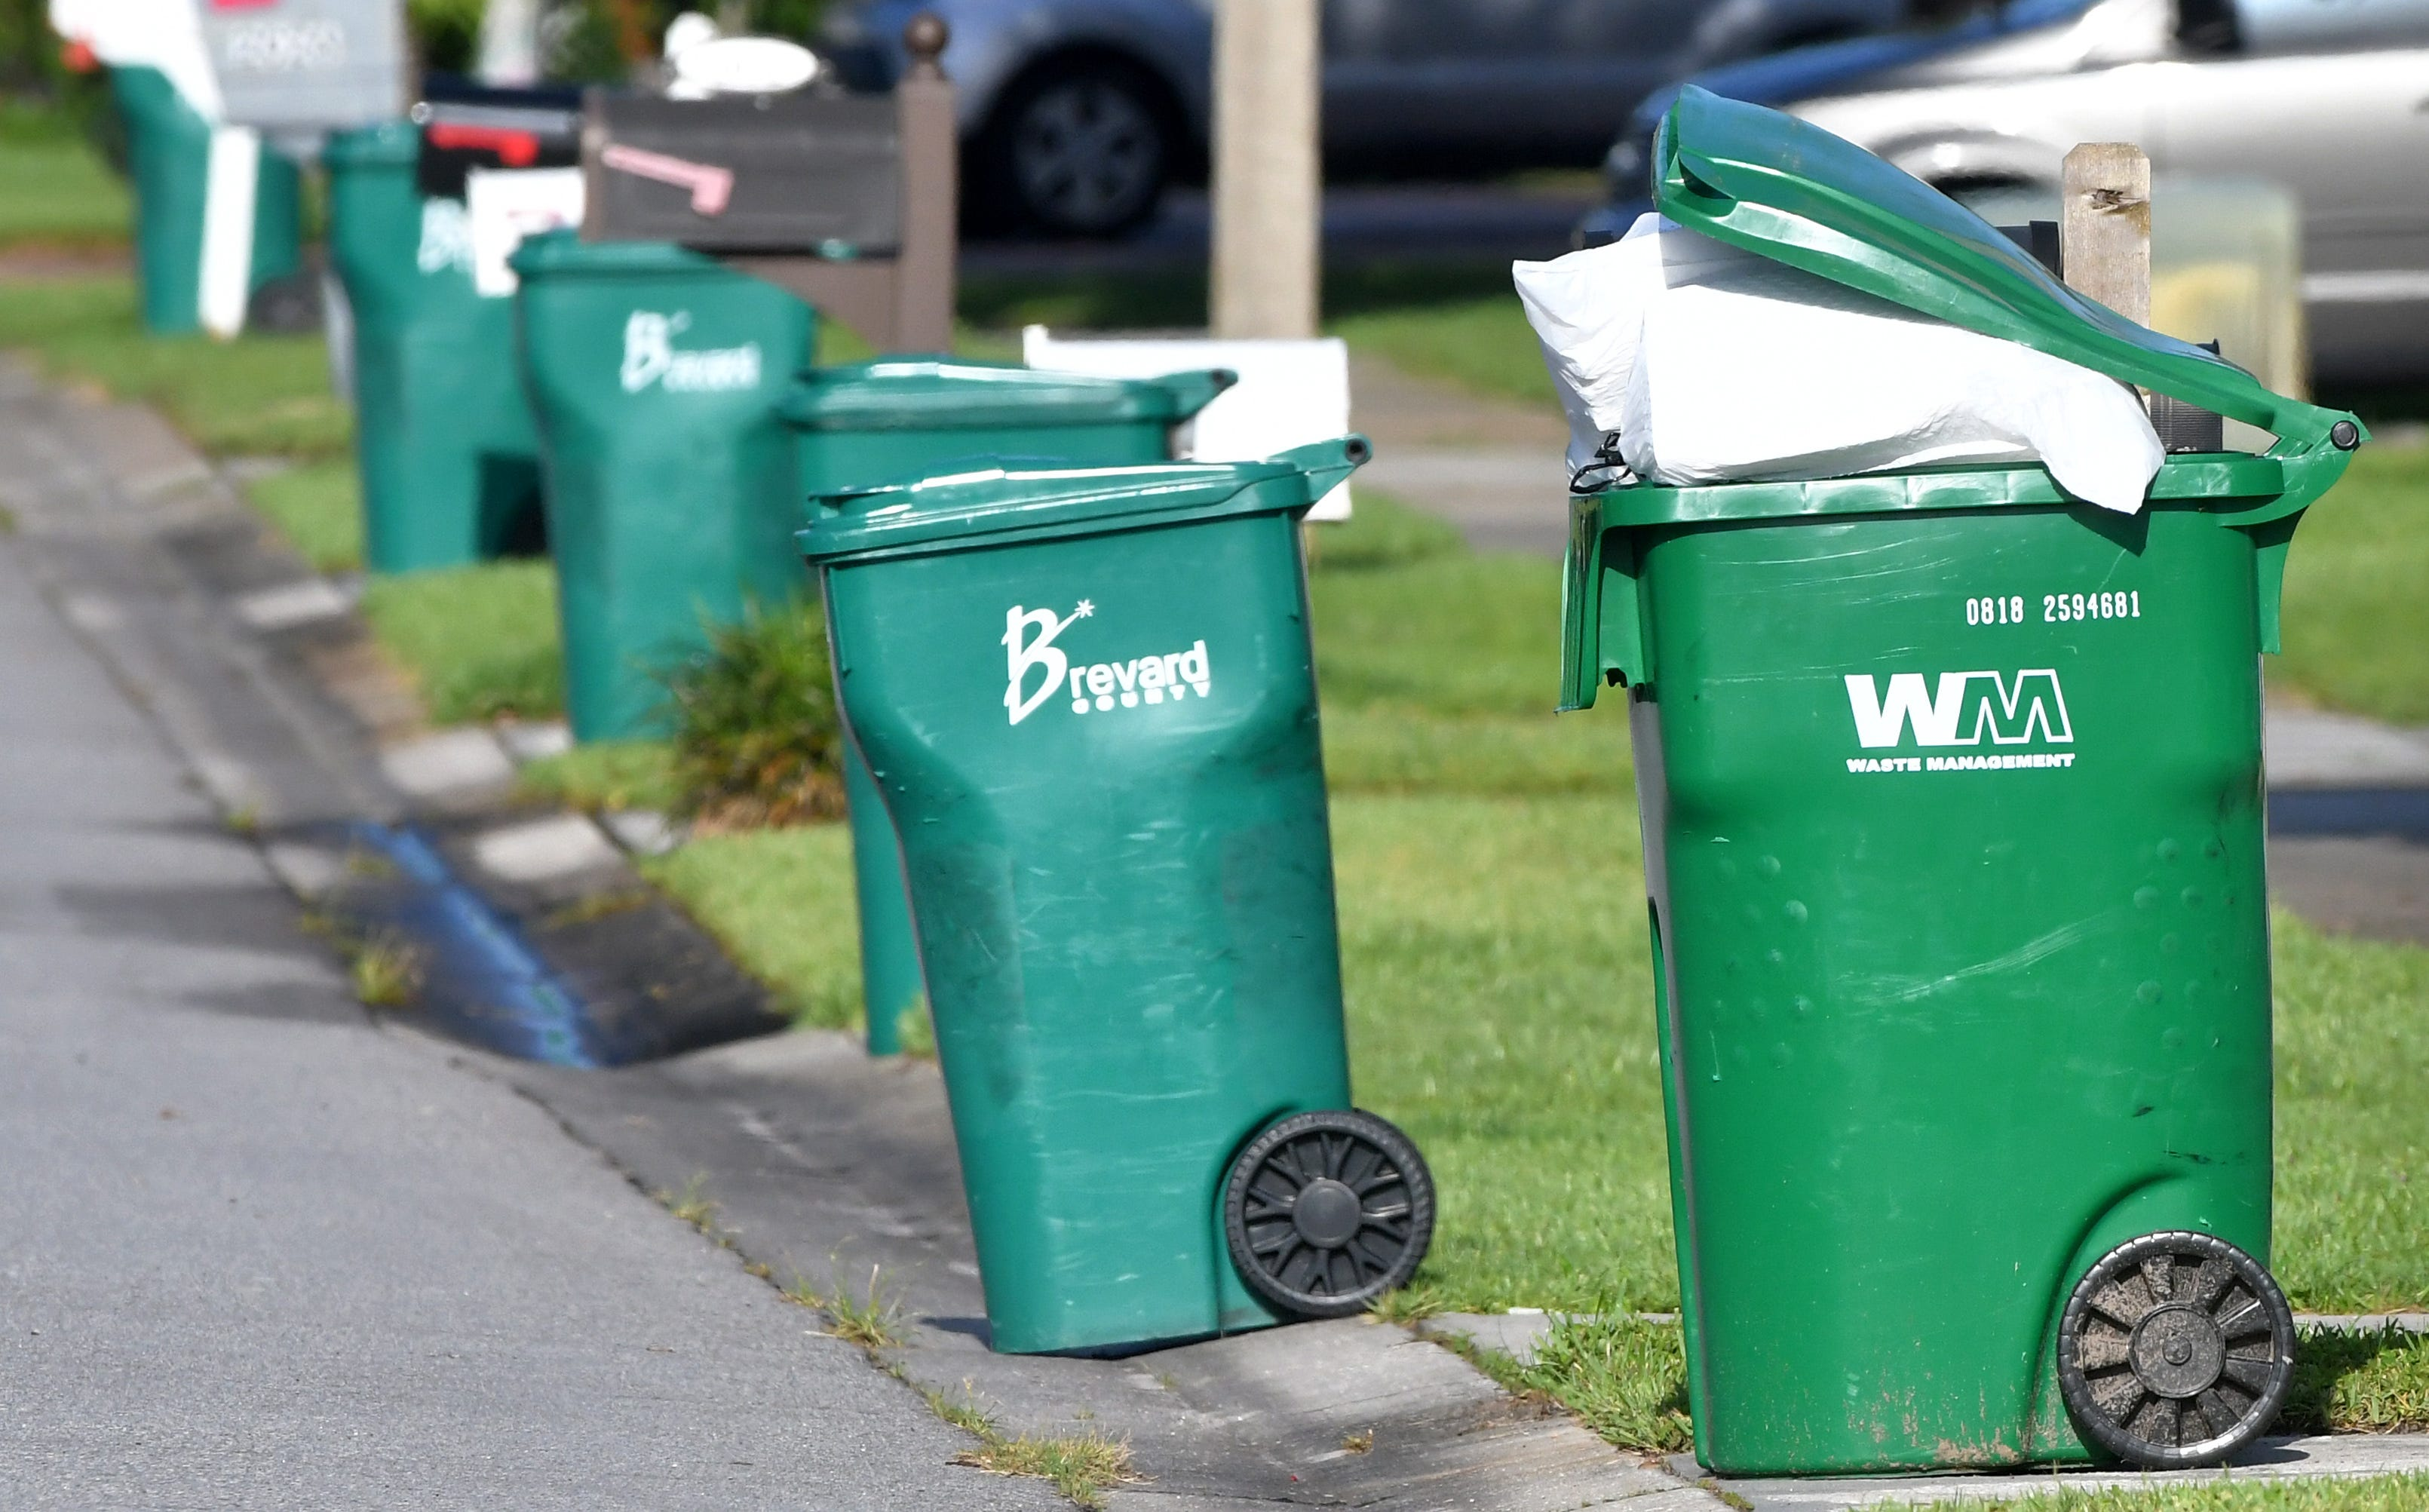 Brevard Trash Collection After Christmas 2020 Waste Management faces county fines for missing trash pickups